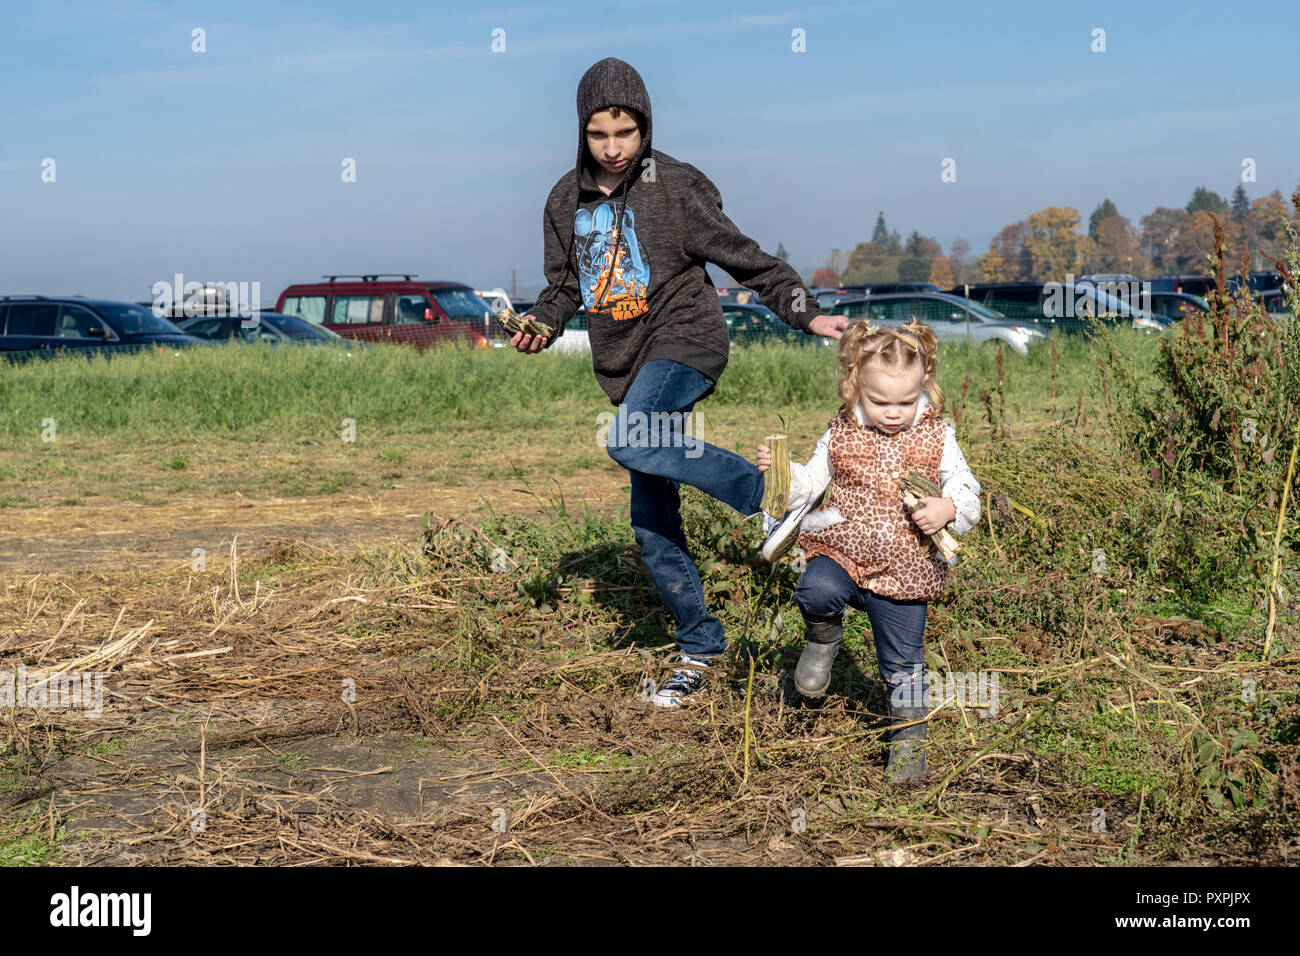 Teenage boy trying to corral his 23 month old sister, with both tripping over the vines in the pumpkin patch. - Stock Image